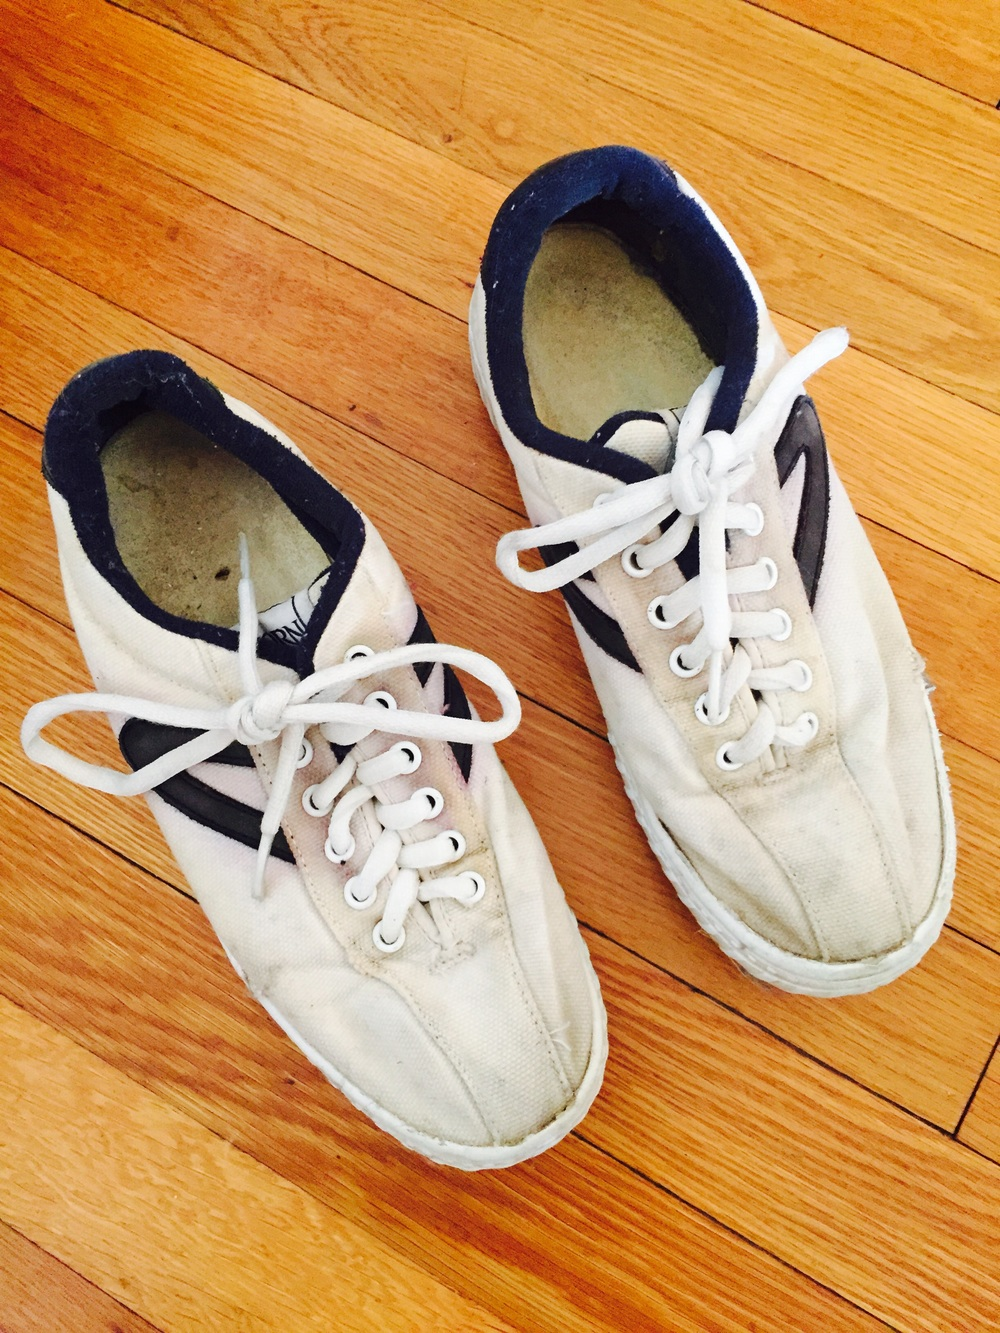 In praise of the little (white) sneaker